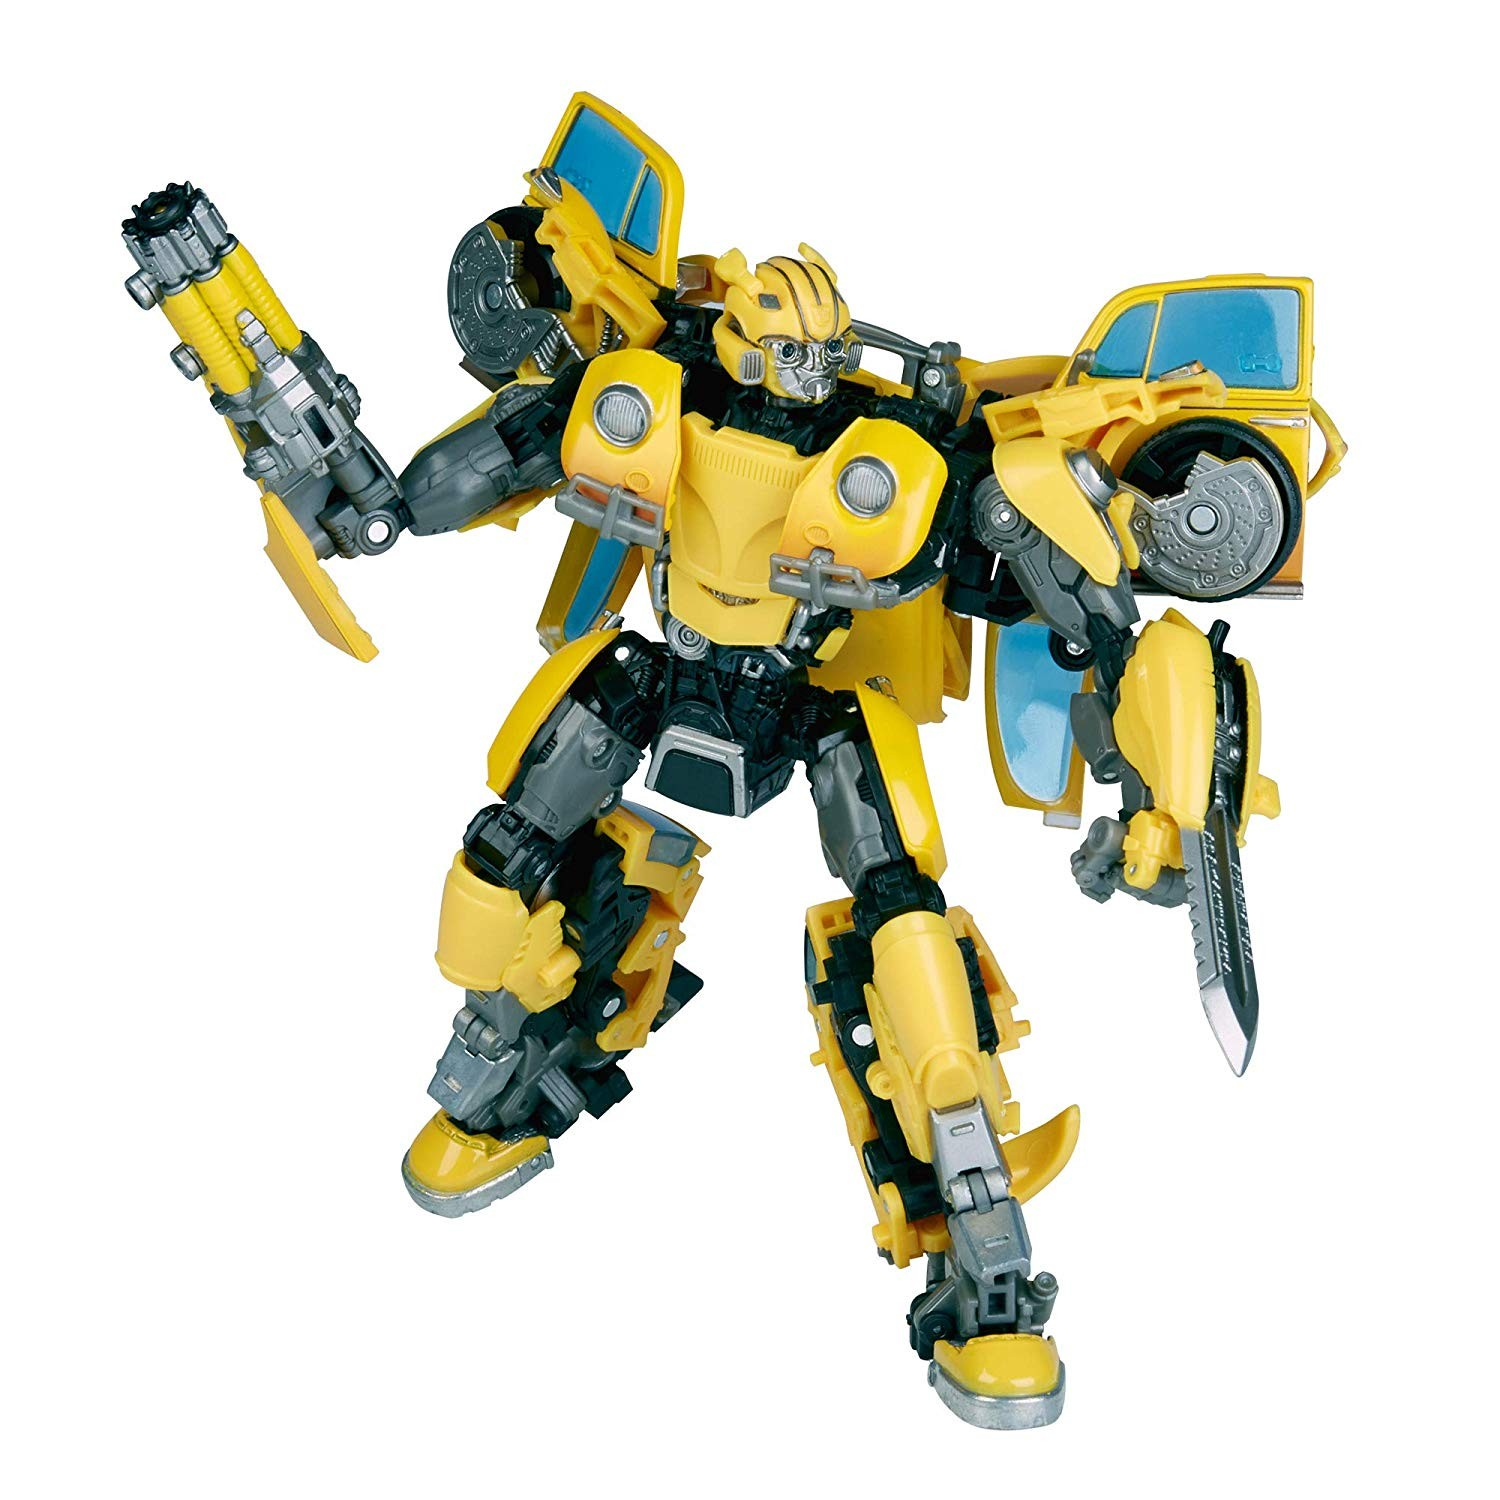 Studio Series Dropkick, KSI Sentry, Masterpiece MPM-7